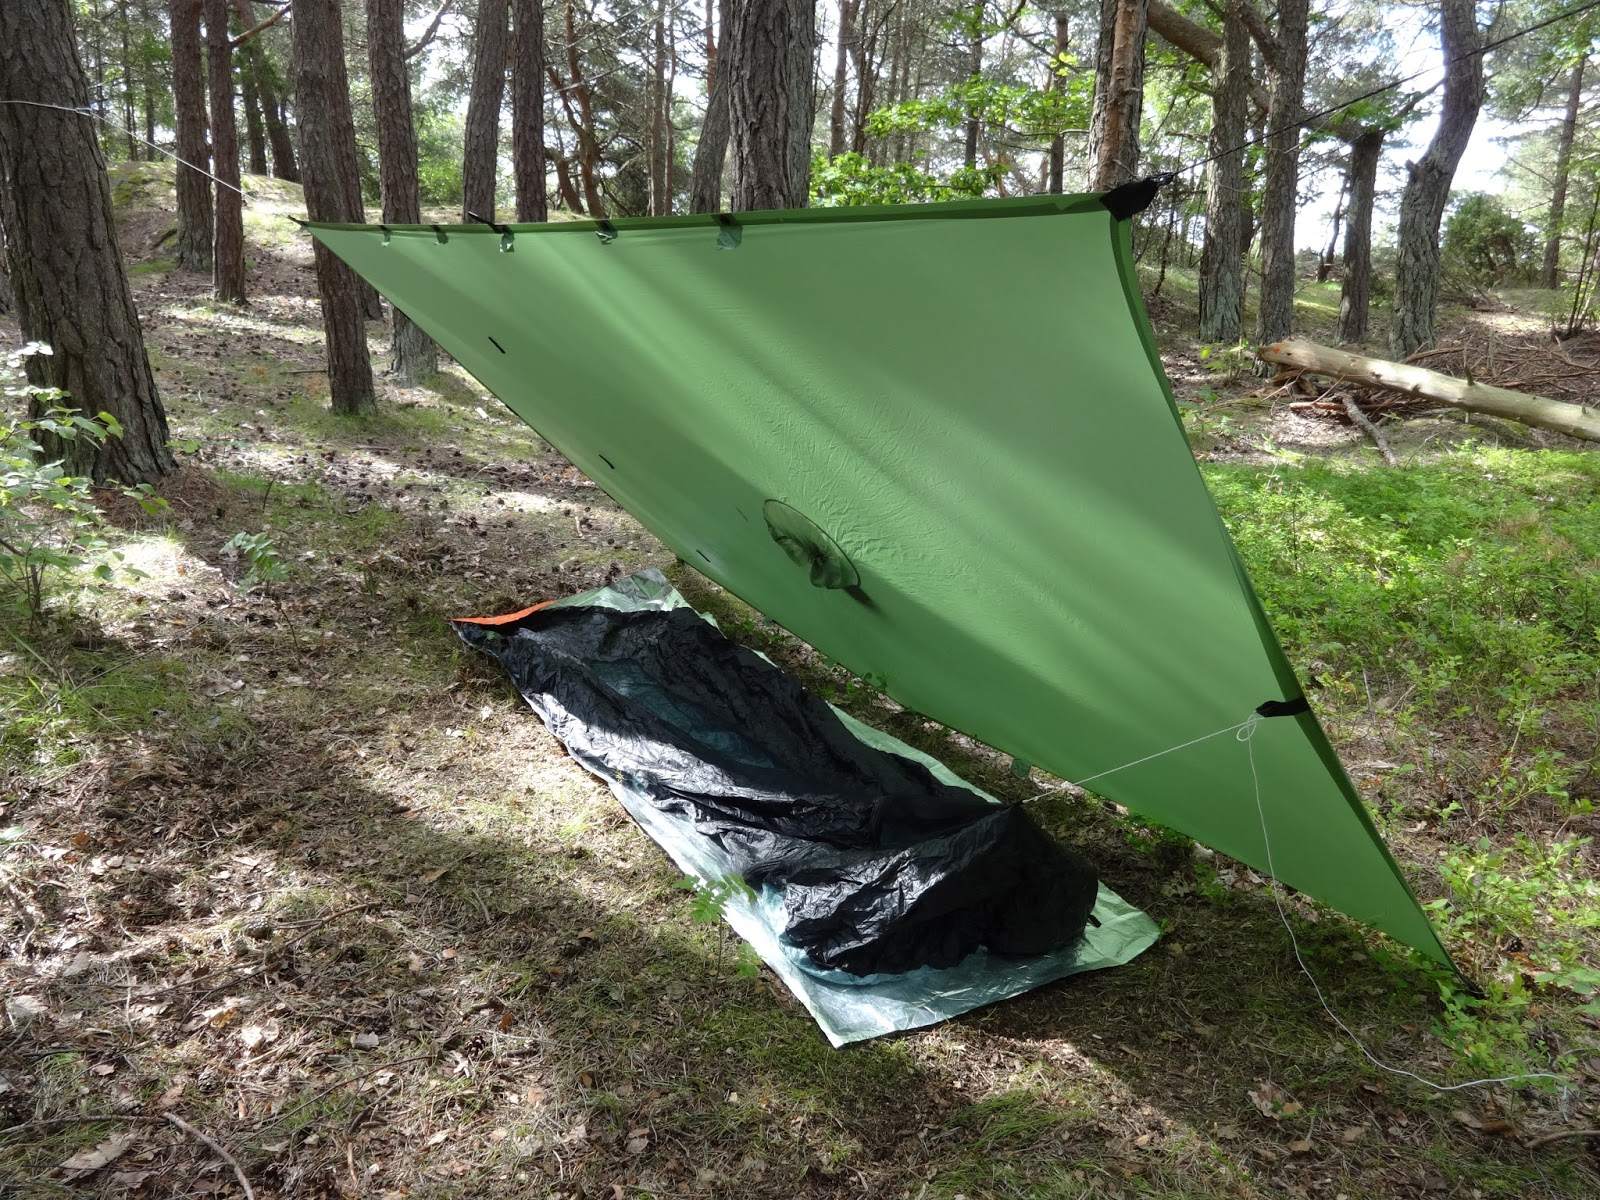 The next review will be my first impressions on the new Dimma bivy which is the one on the bottom in the picture at the top. The Dimma bivy is not listed ... & Cesar and The Woods: Borah Gear Bivies Double Reviews: Long Term ...